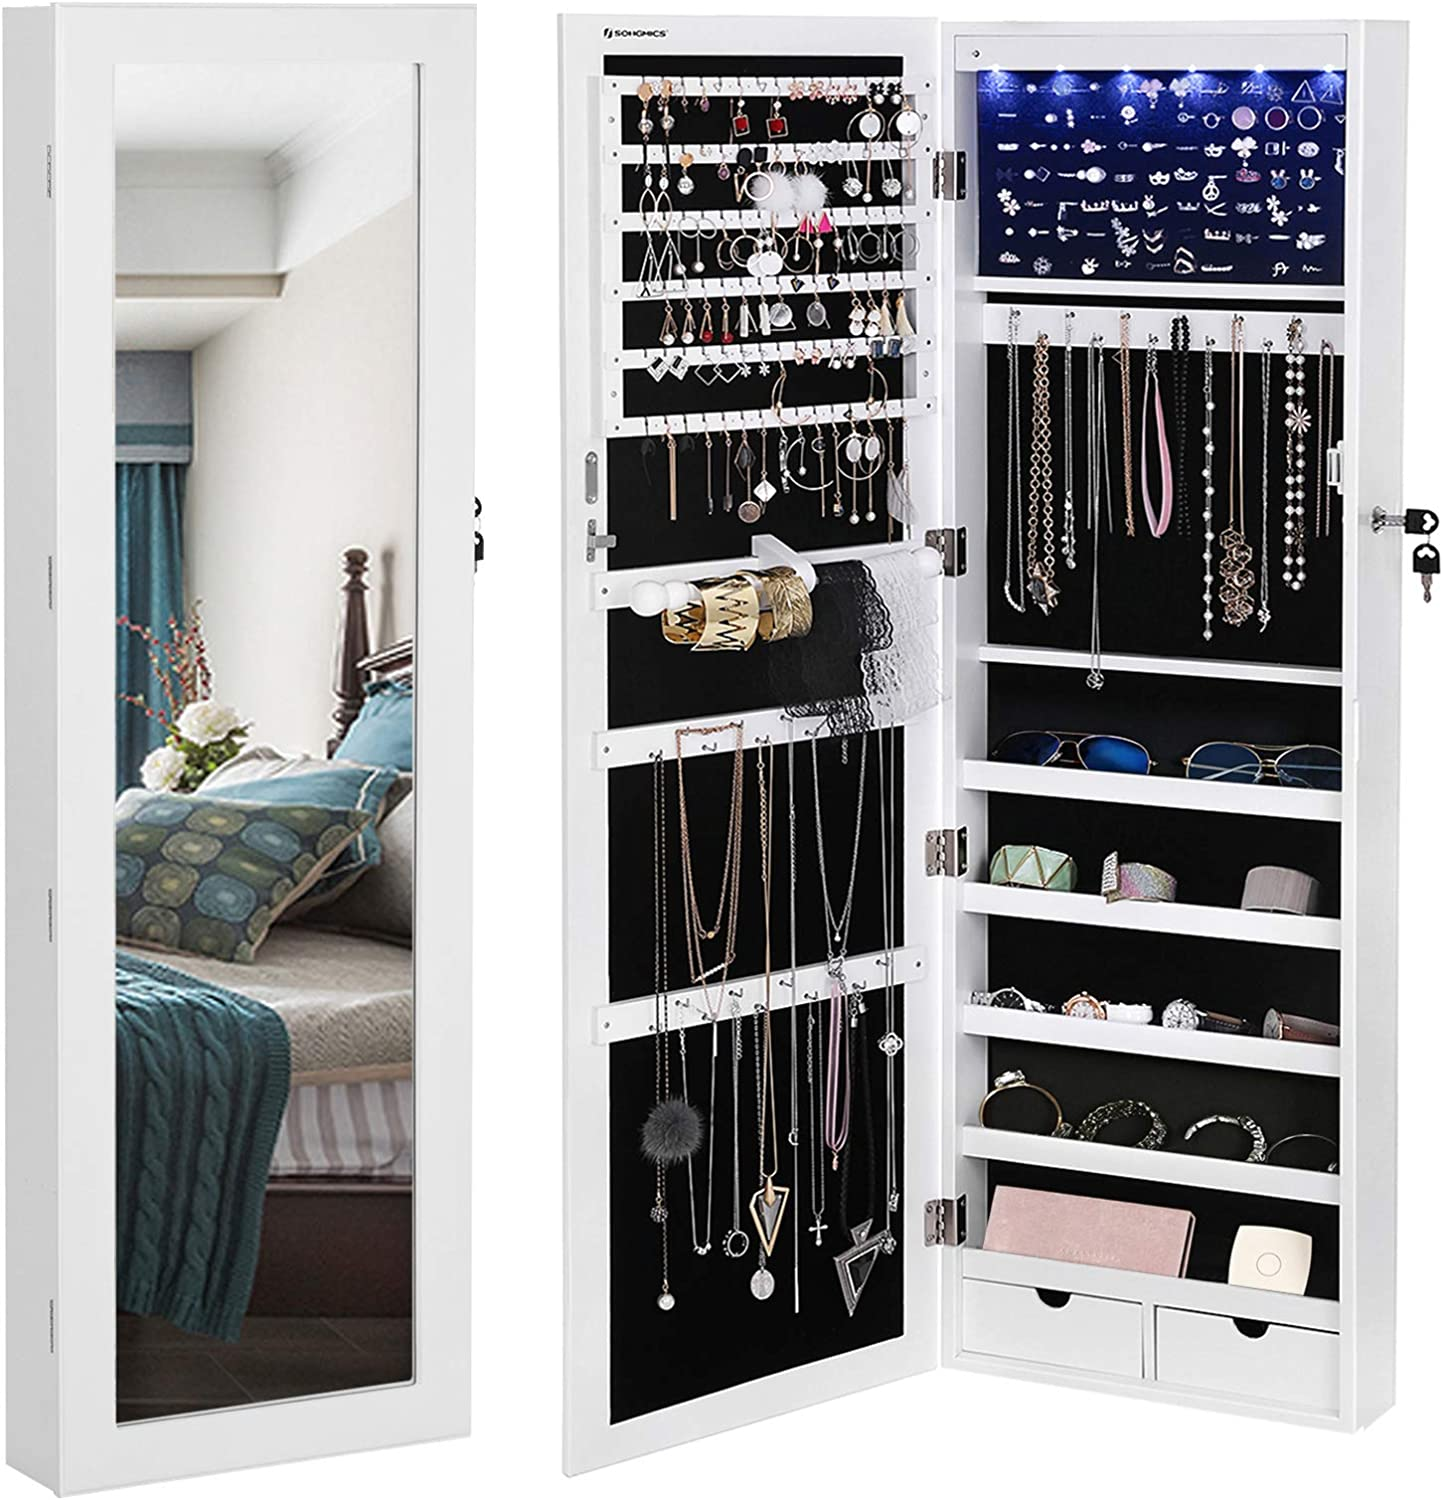 SONGMICS 6 LEDs Cabinet Lockable Wall/Door Mounted Jewelry Armoire Organizer